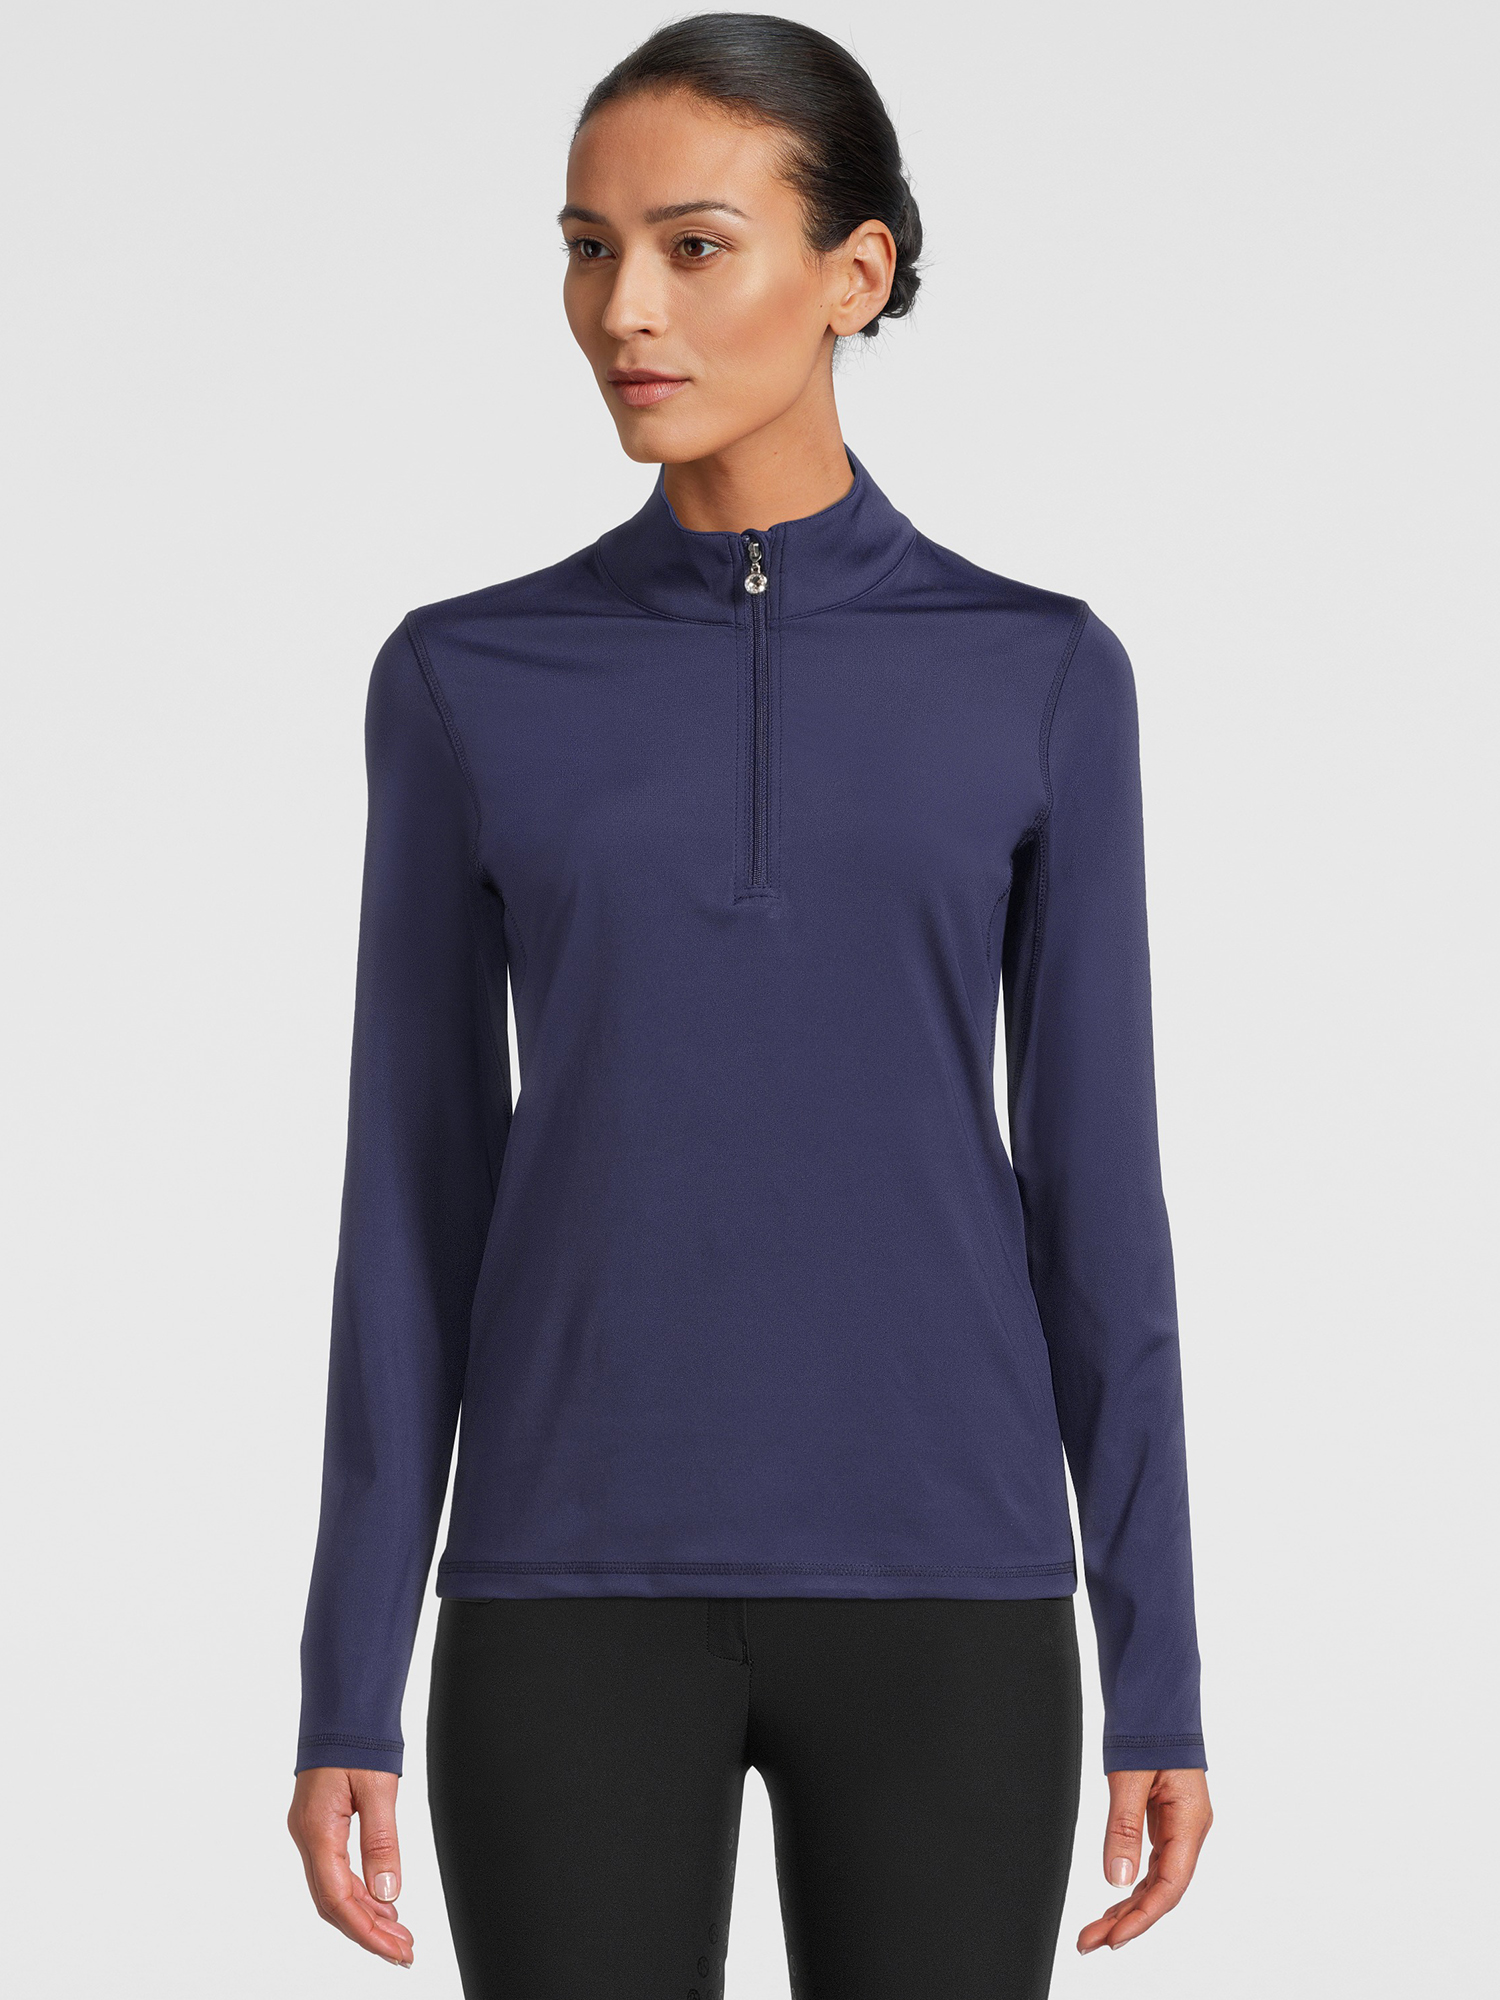 PS of Sweden Base layer, Willow in Royal